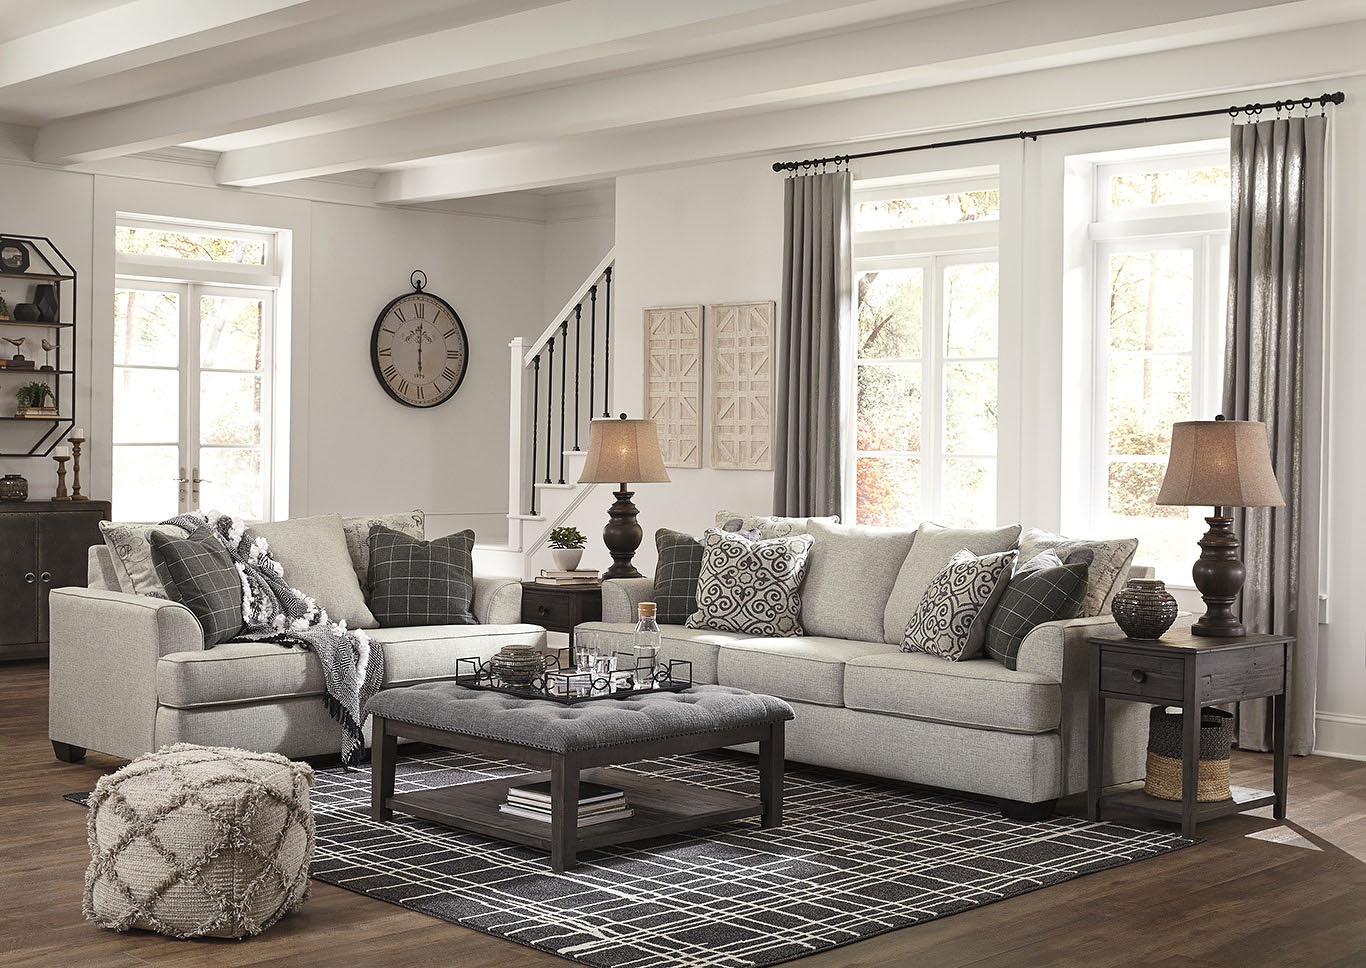 Velletri Pewter Sofa & Loveseat,Signature Design By Ashley